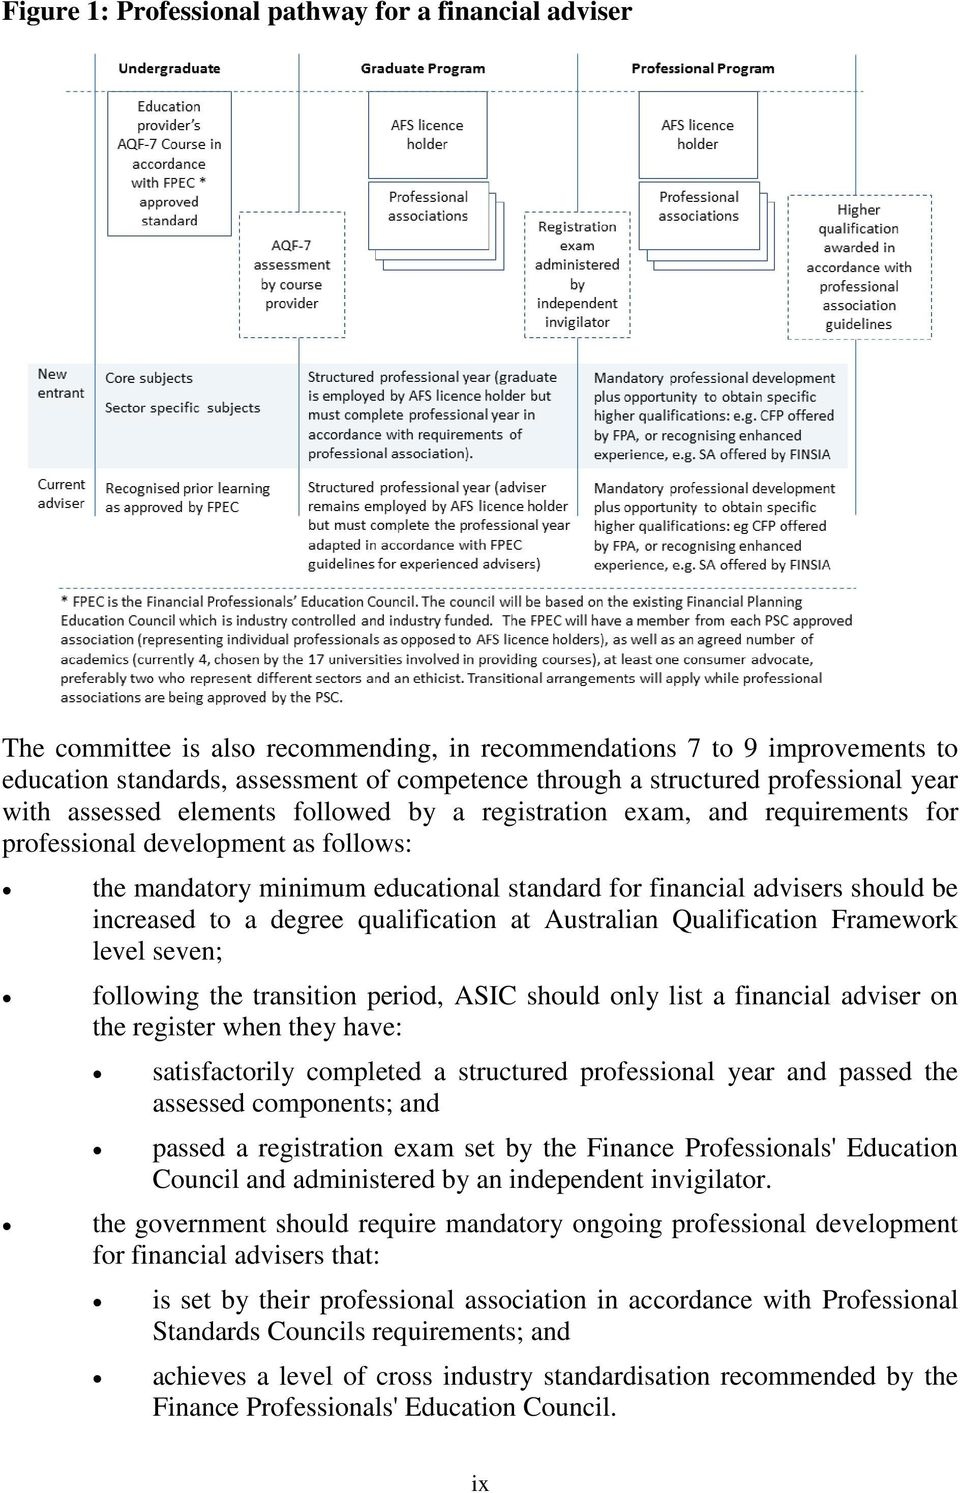 should be increased to a degree qualification at Australian Qualification Framework level seven; following the transition period, ASIC should only list a financial adviser on the register when they